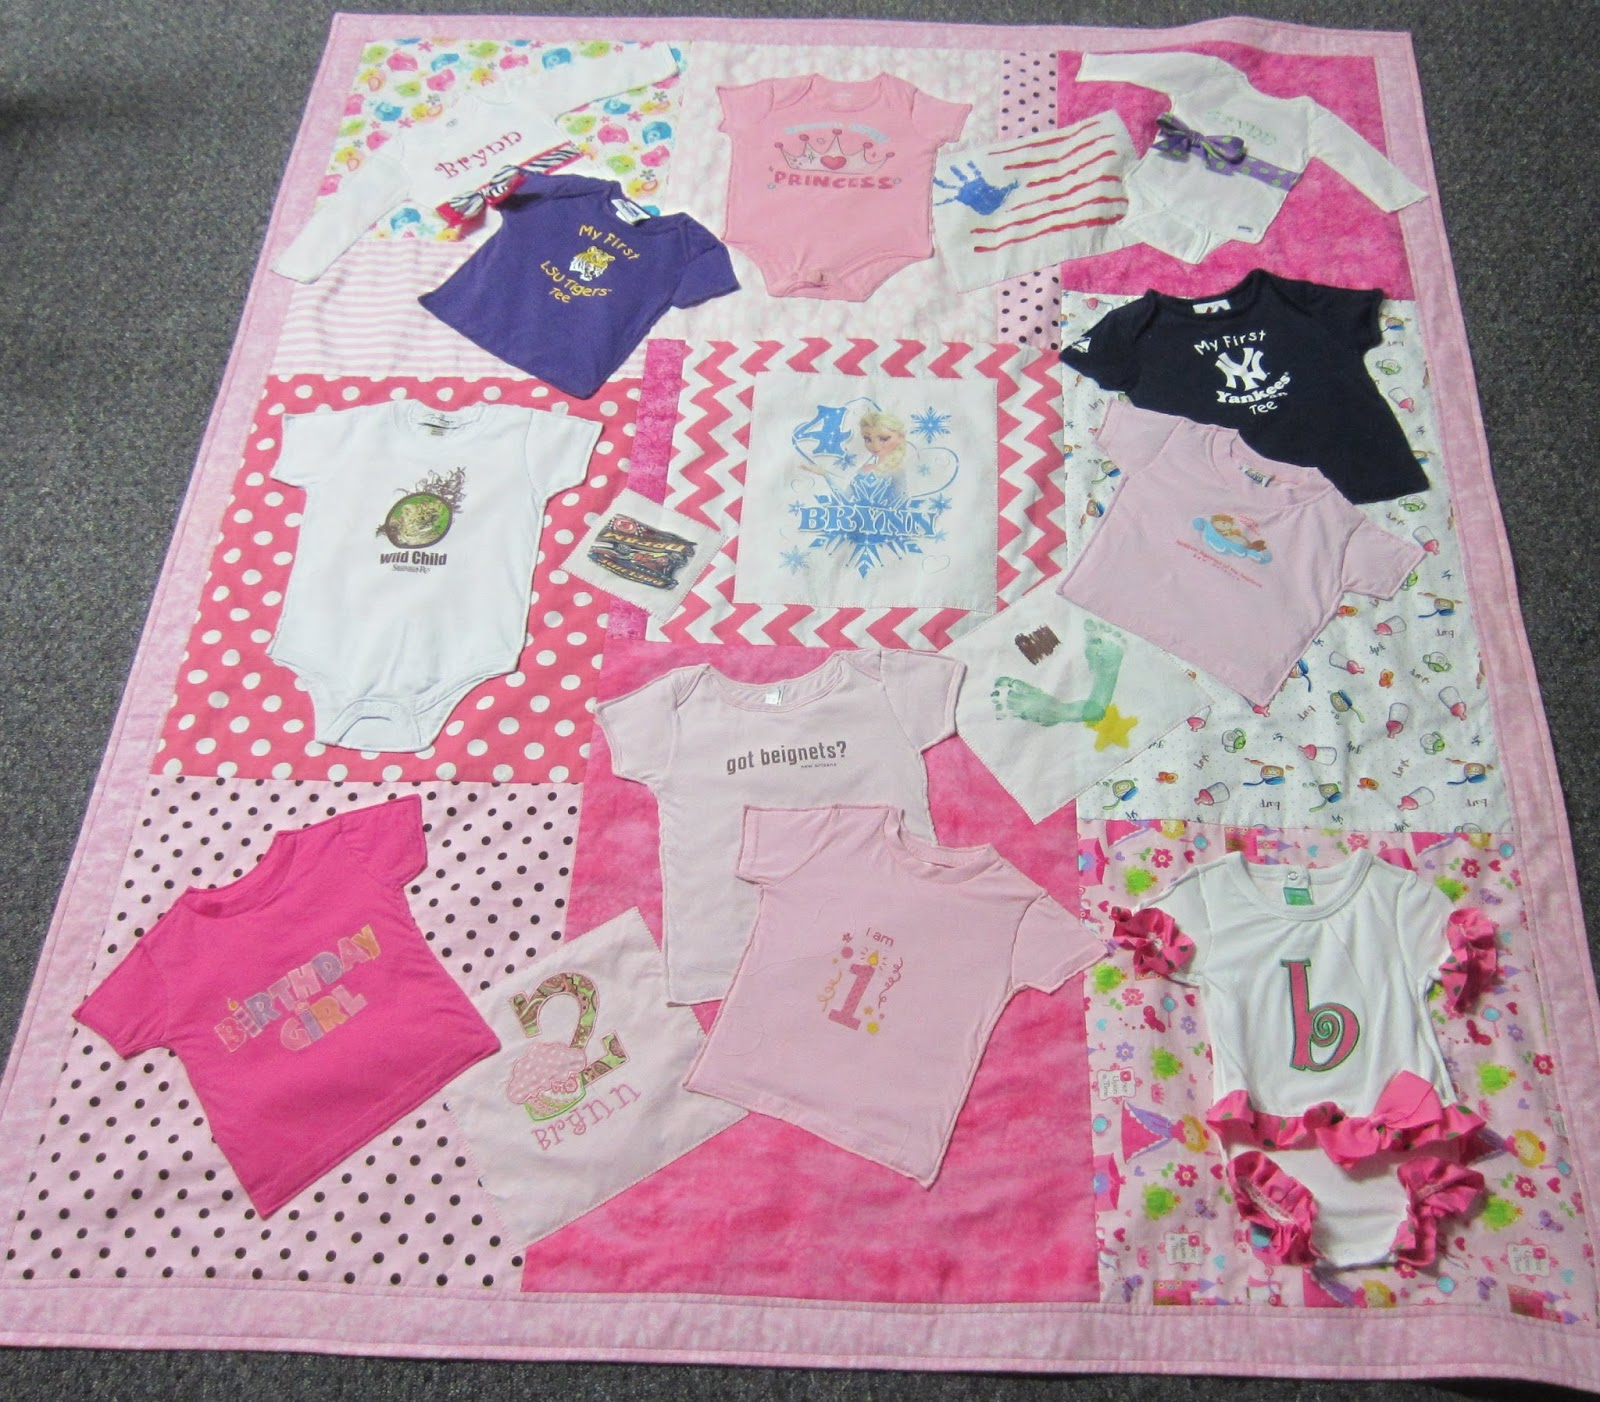 How To Make A Baby Blanket How To Make A Quilted Baby Blanket How To Make A Baby